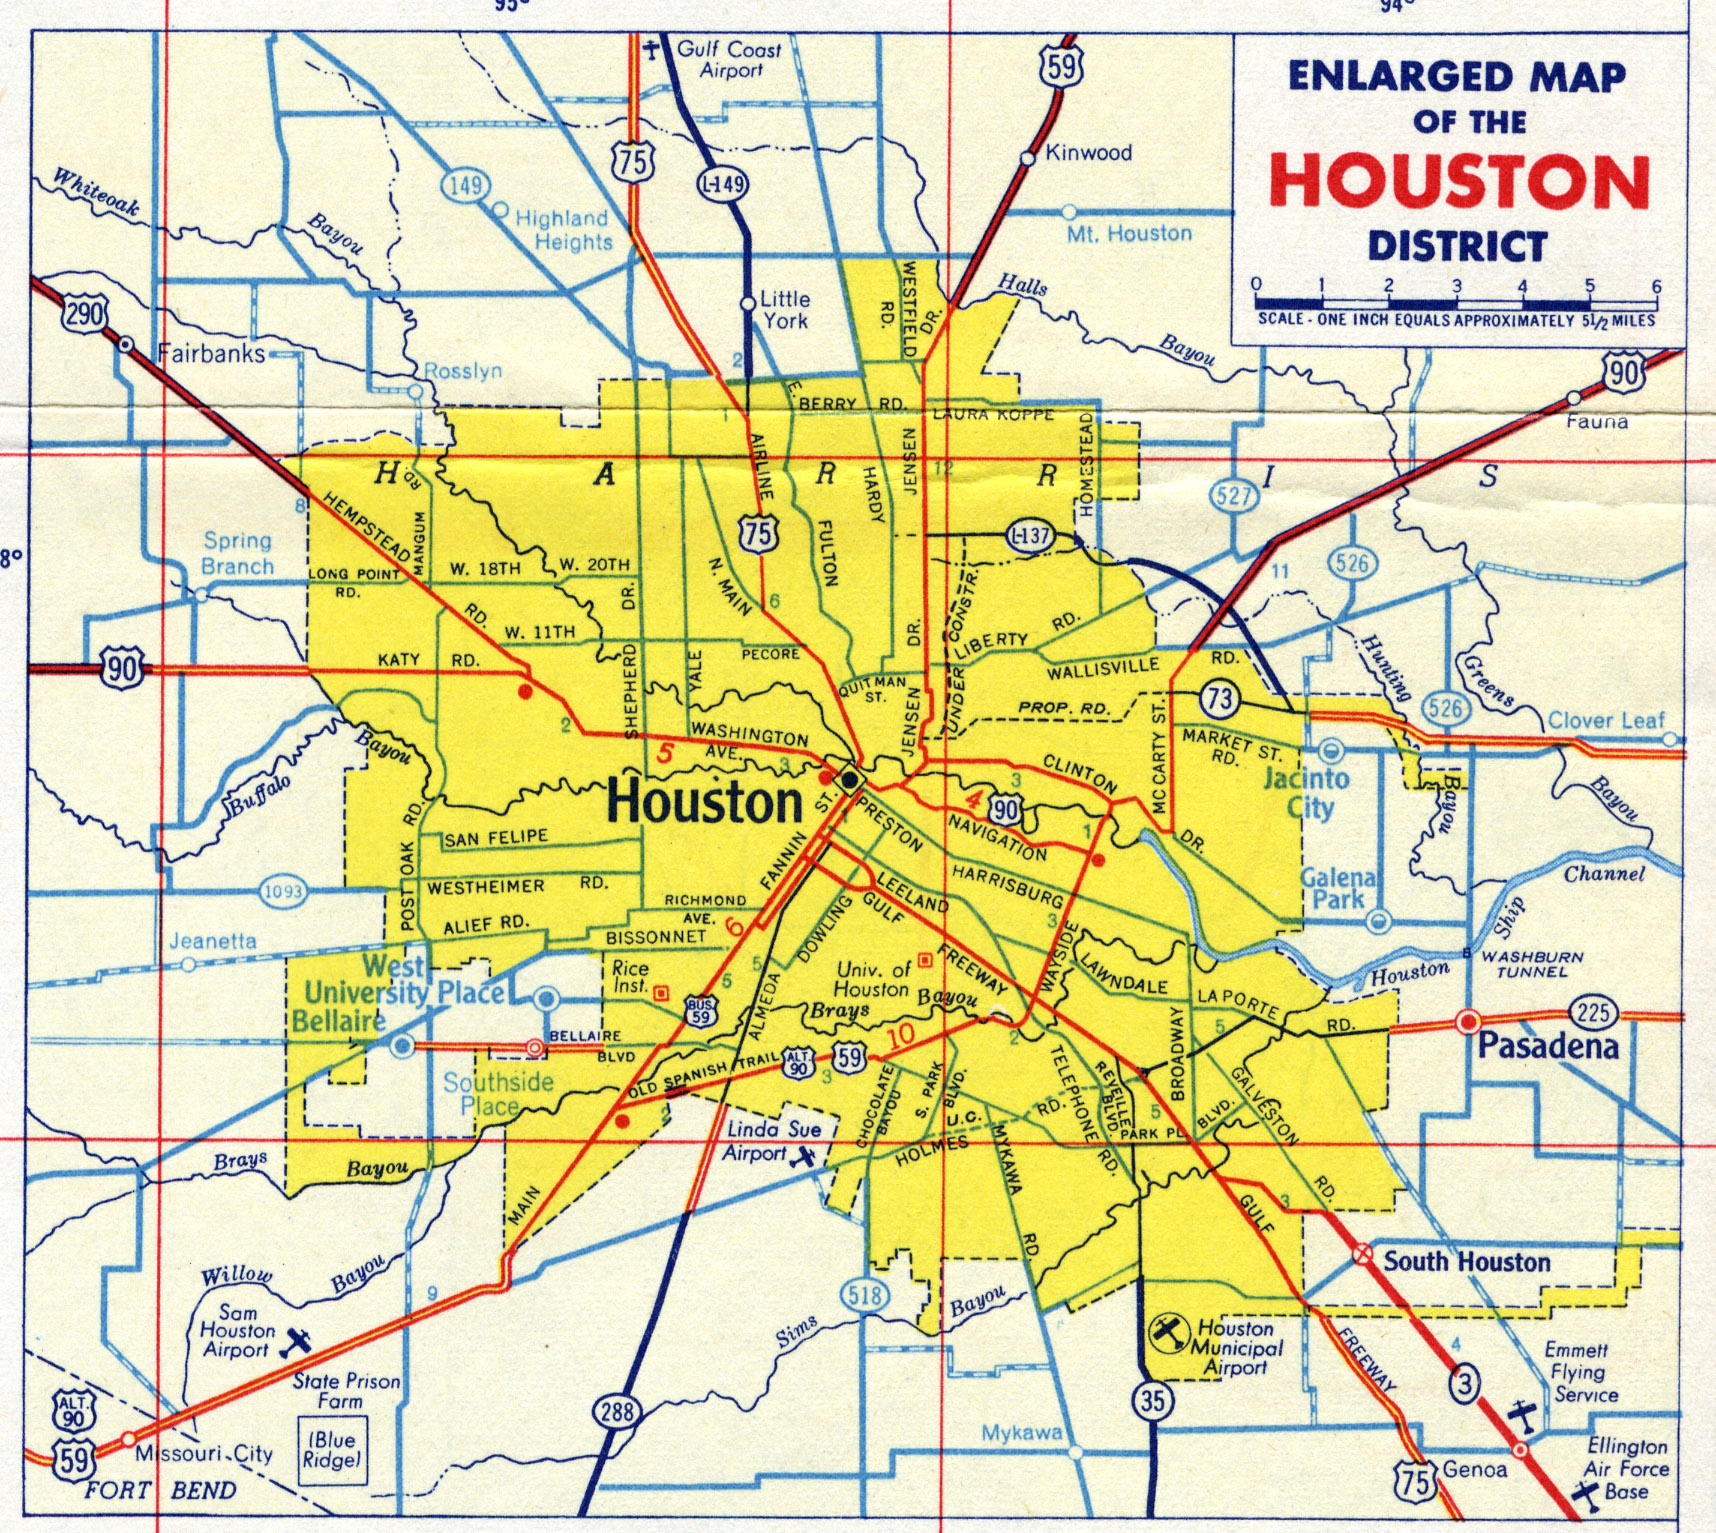 Map Of Houston Road Map Of Houston Satellite Images Of Houston - Printable map of houston